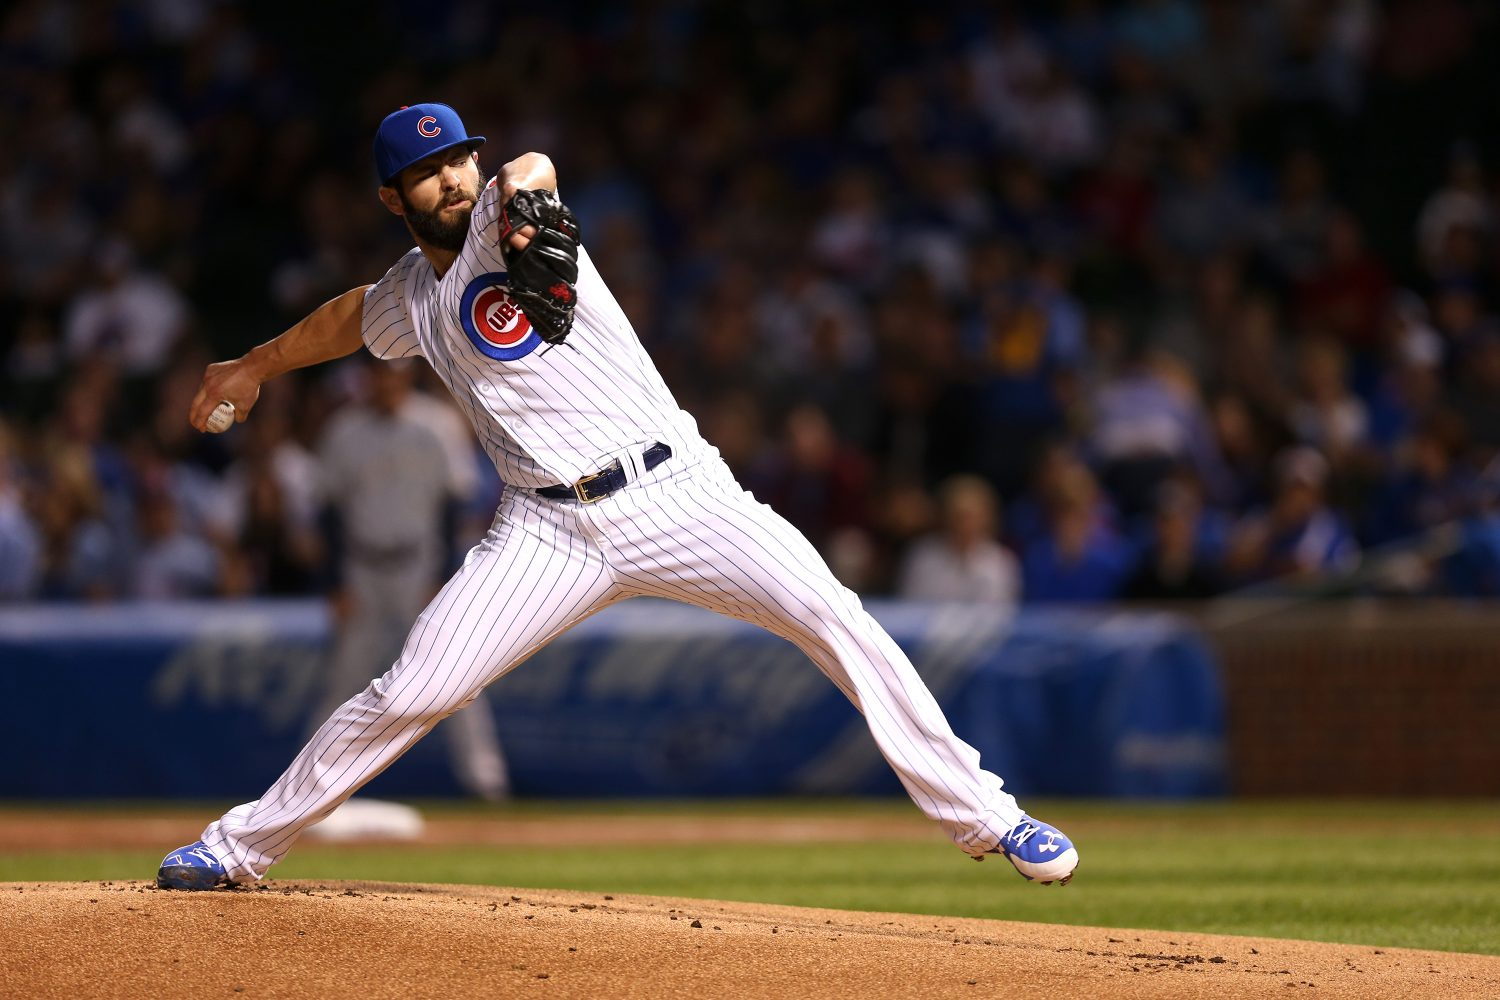 Chicago+Cubs+starting+pitcher+Jake+Arrieta+delivers+to+the+Milwaukee+Brewers+during+the+first+inning+on+Tuesday%2C+Sept.+22%2C+2015%2C+at+Wrigley+Field+in+Chicago.+%28Chris+Sweda%2FChicago+Tribune%2FTNS%29